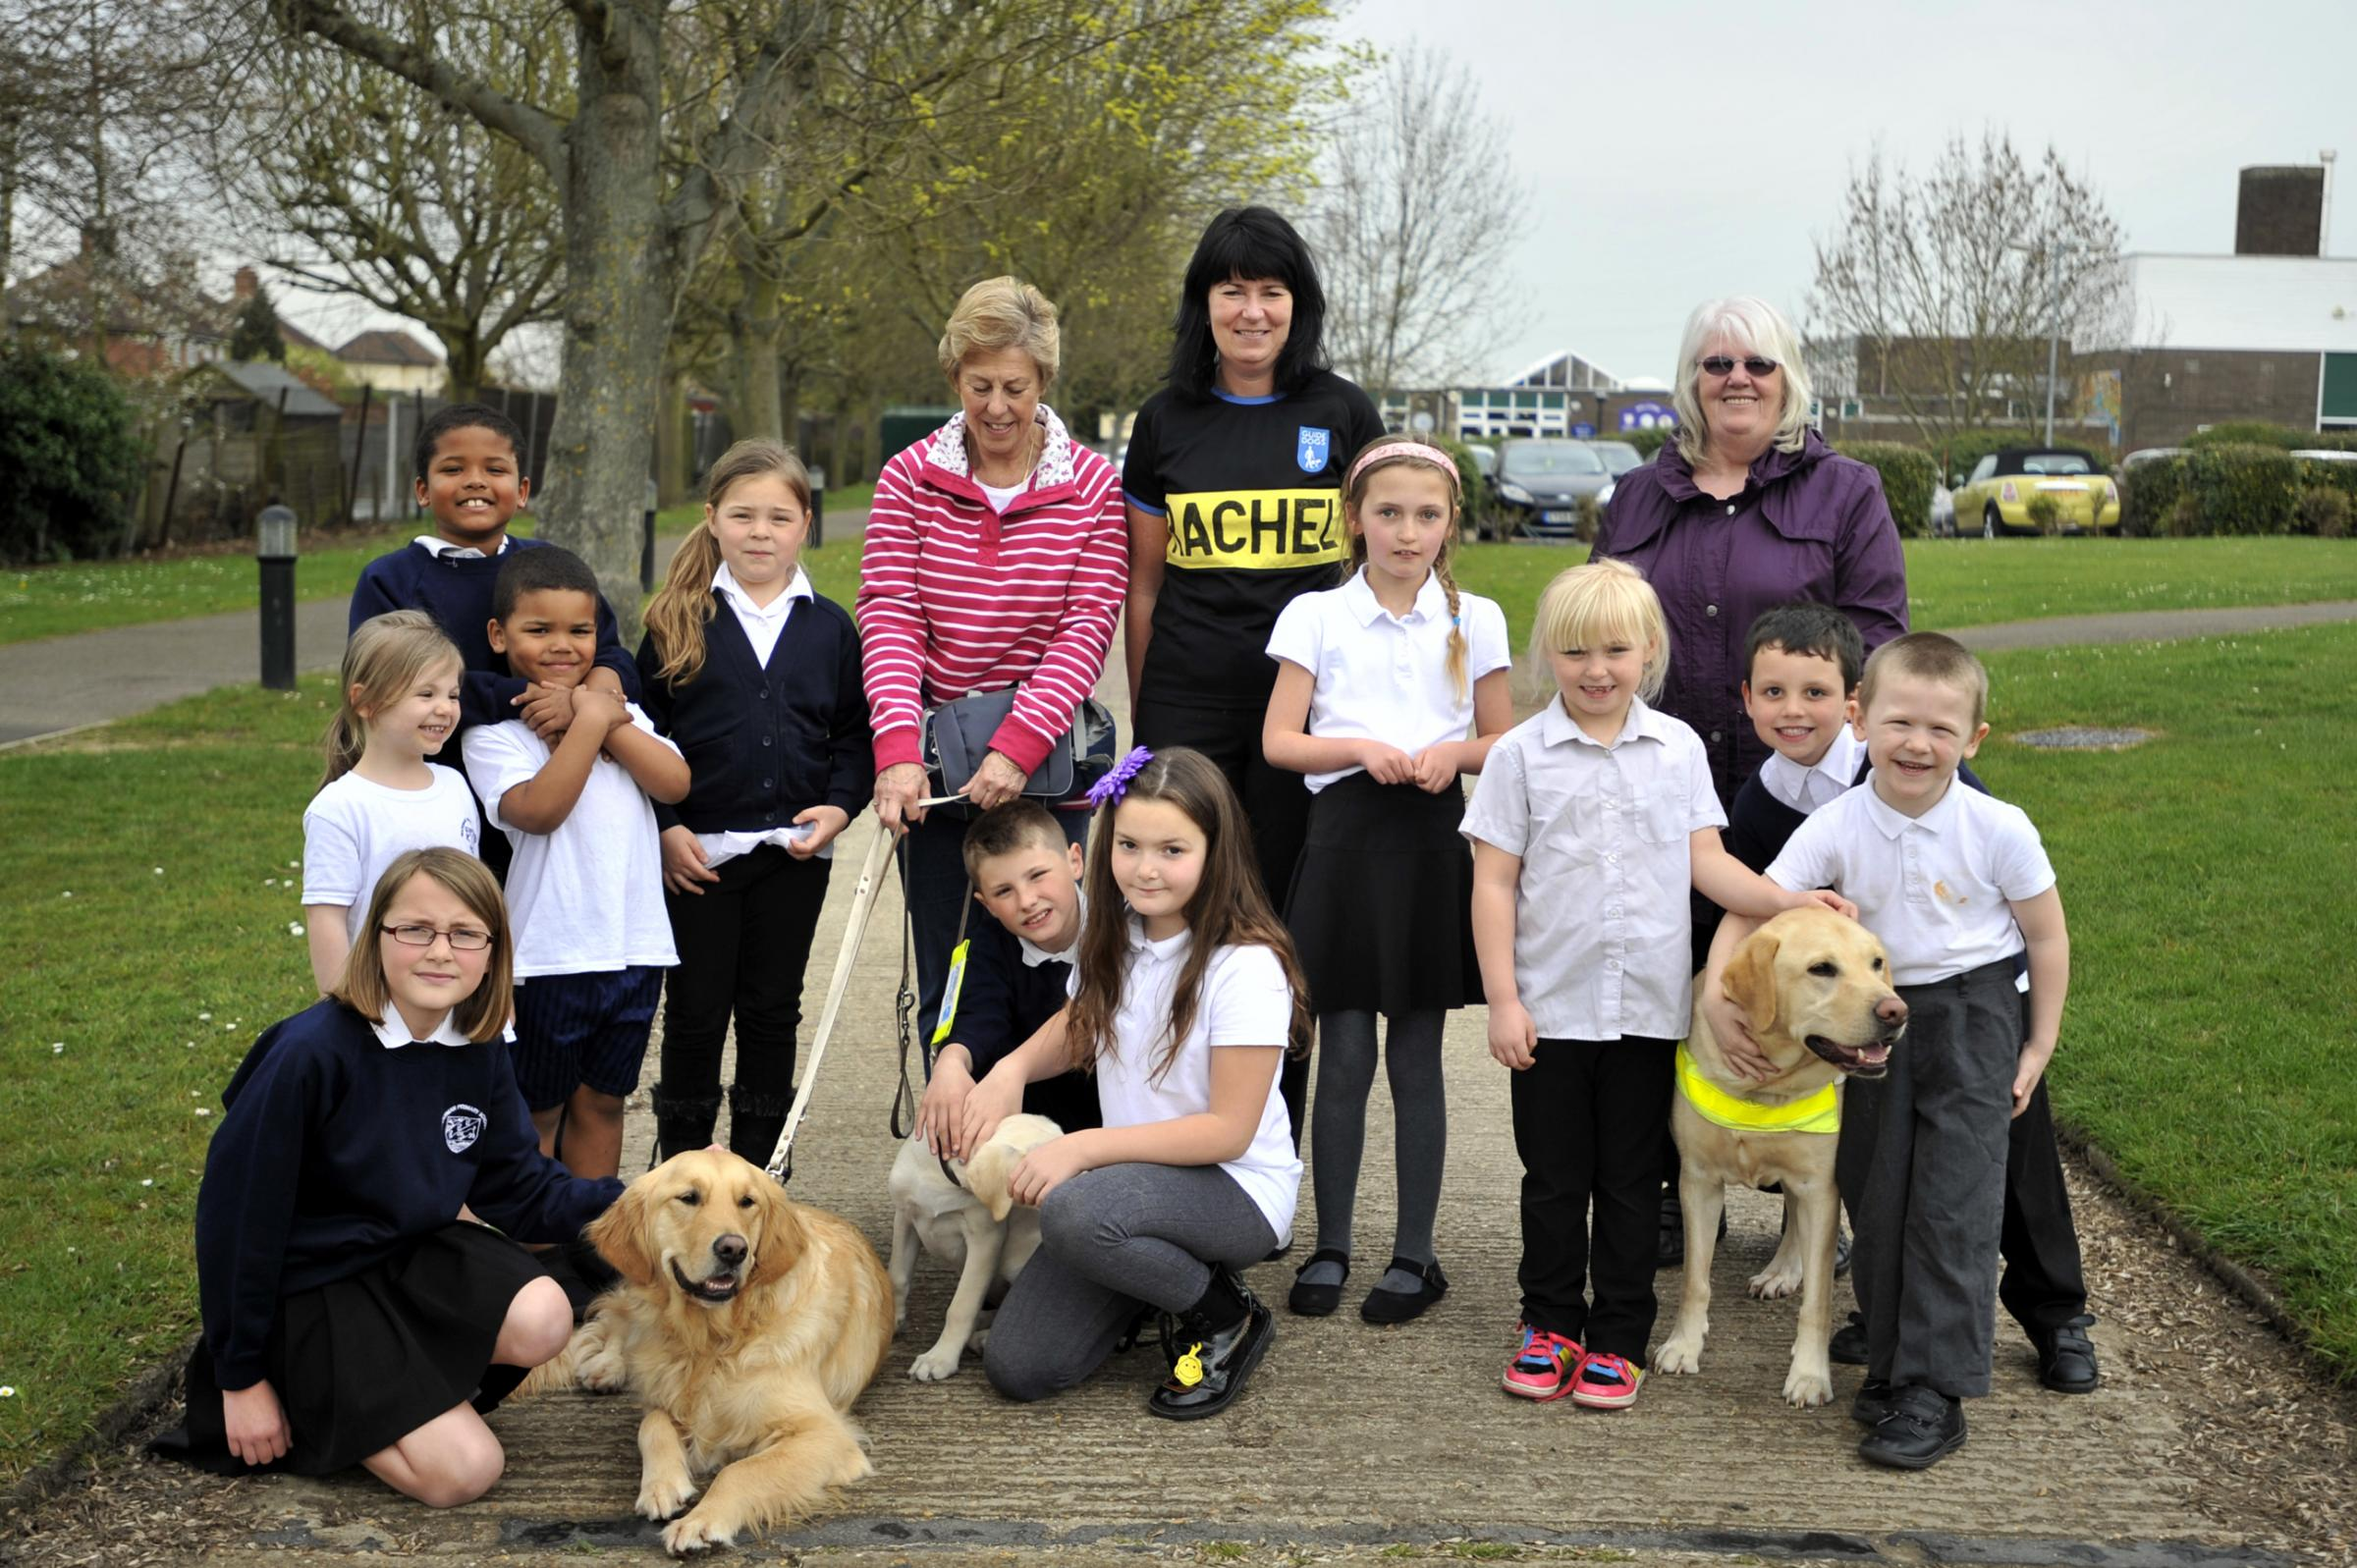 Special help – Rachel Welch with Chris Dunn, pupils, guide dogs and supporters